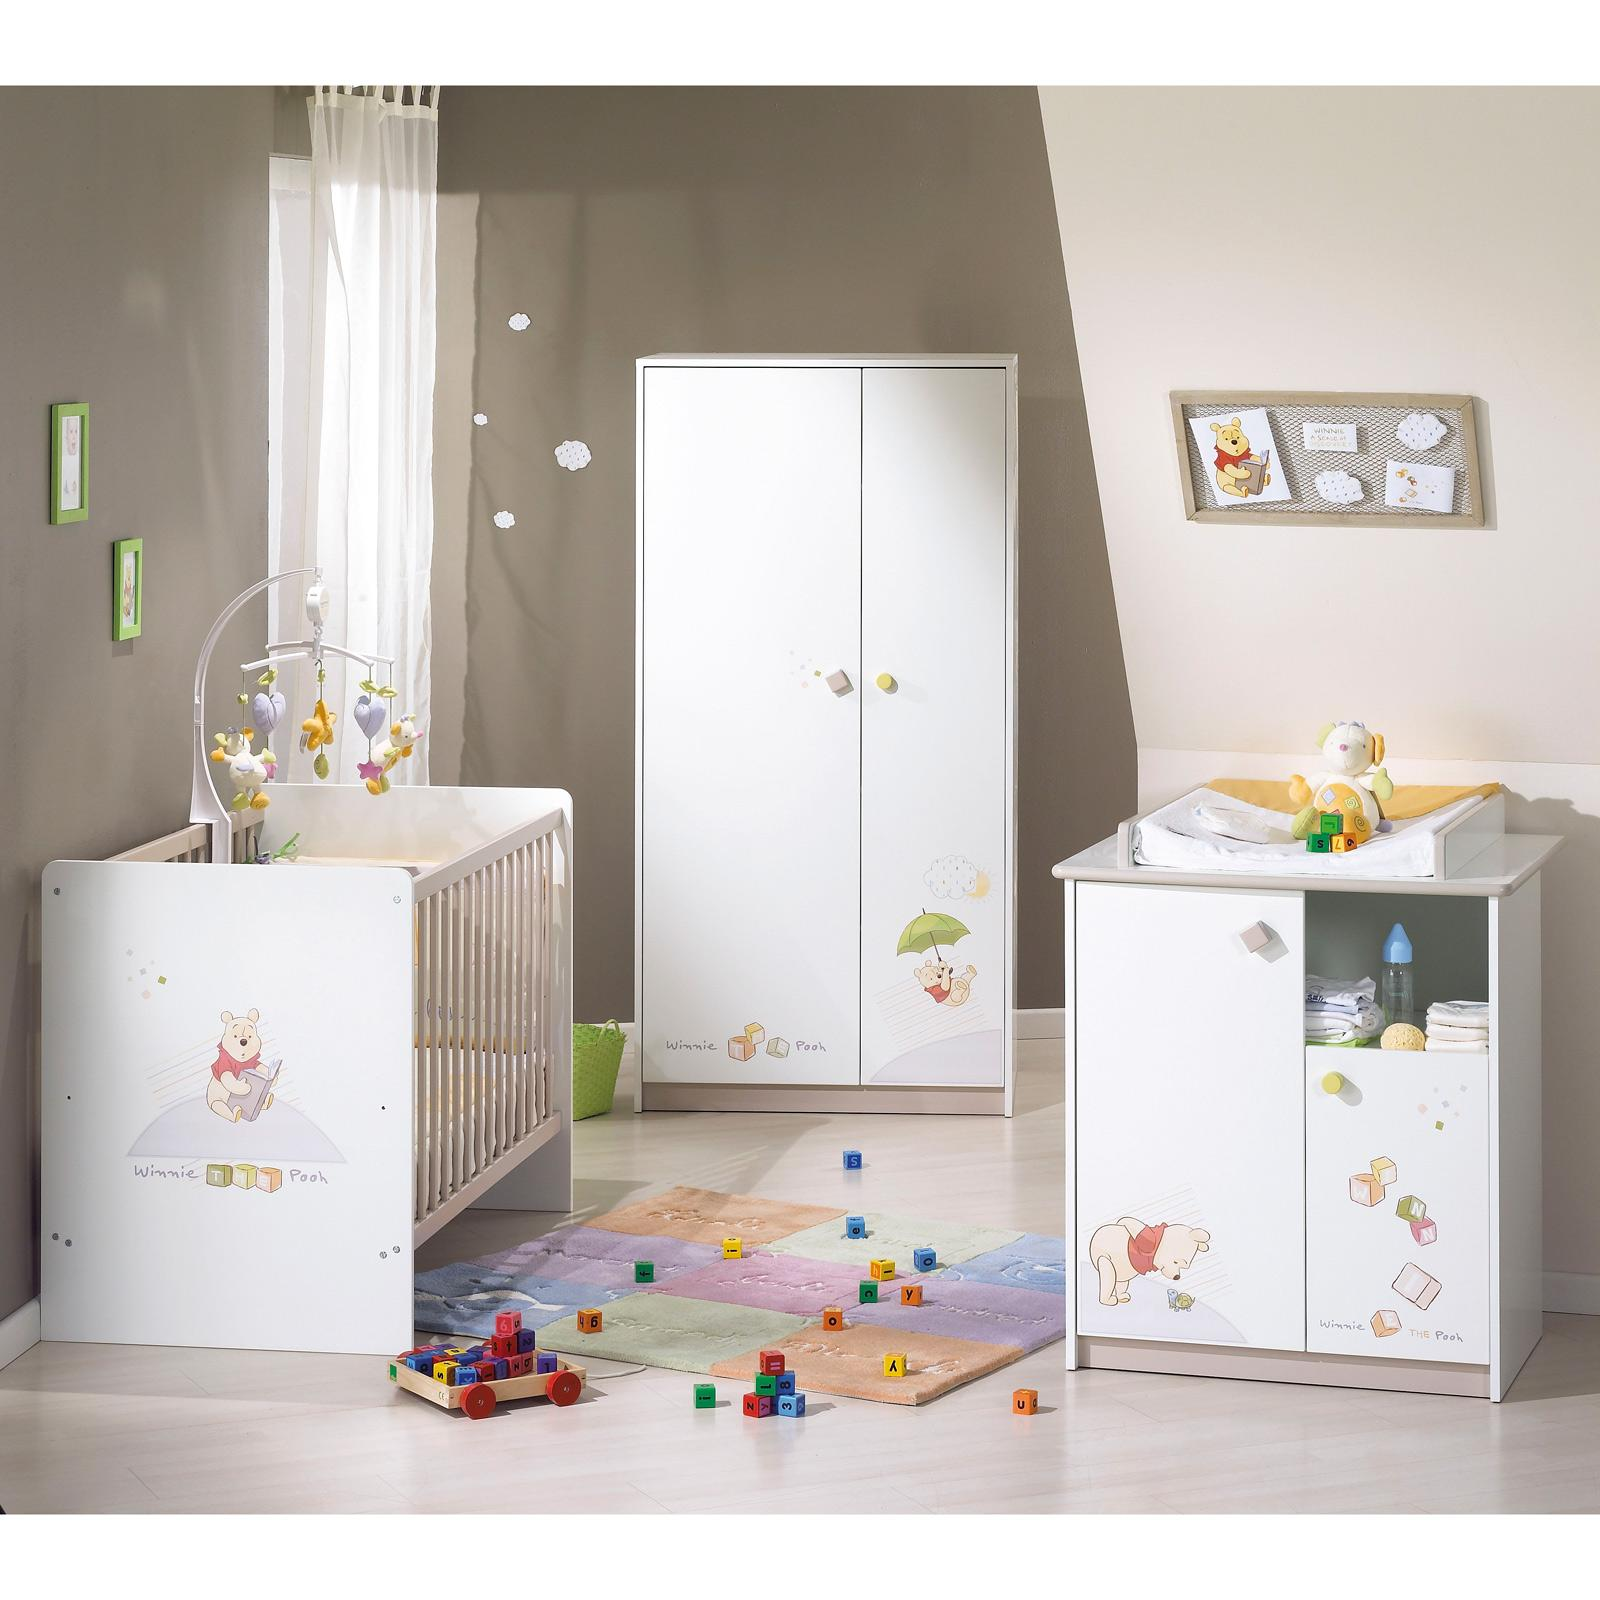 deco chambre bebe fille winnie ForChambre Winnie Bebe